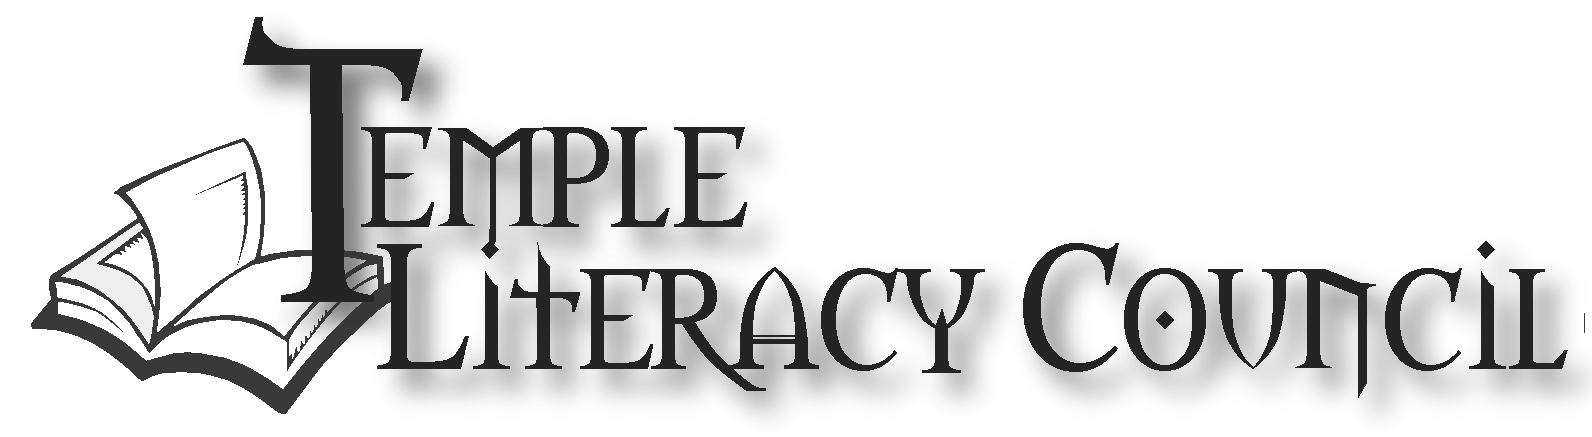 Temple Literacy Council